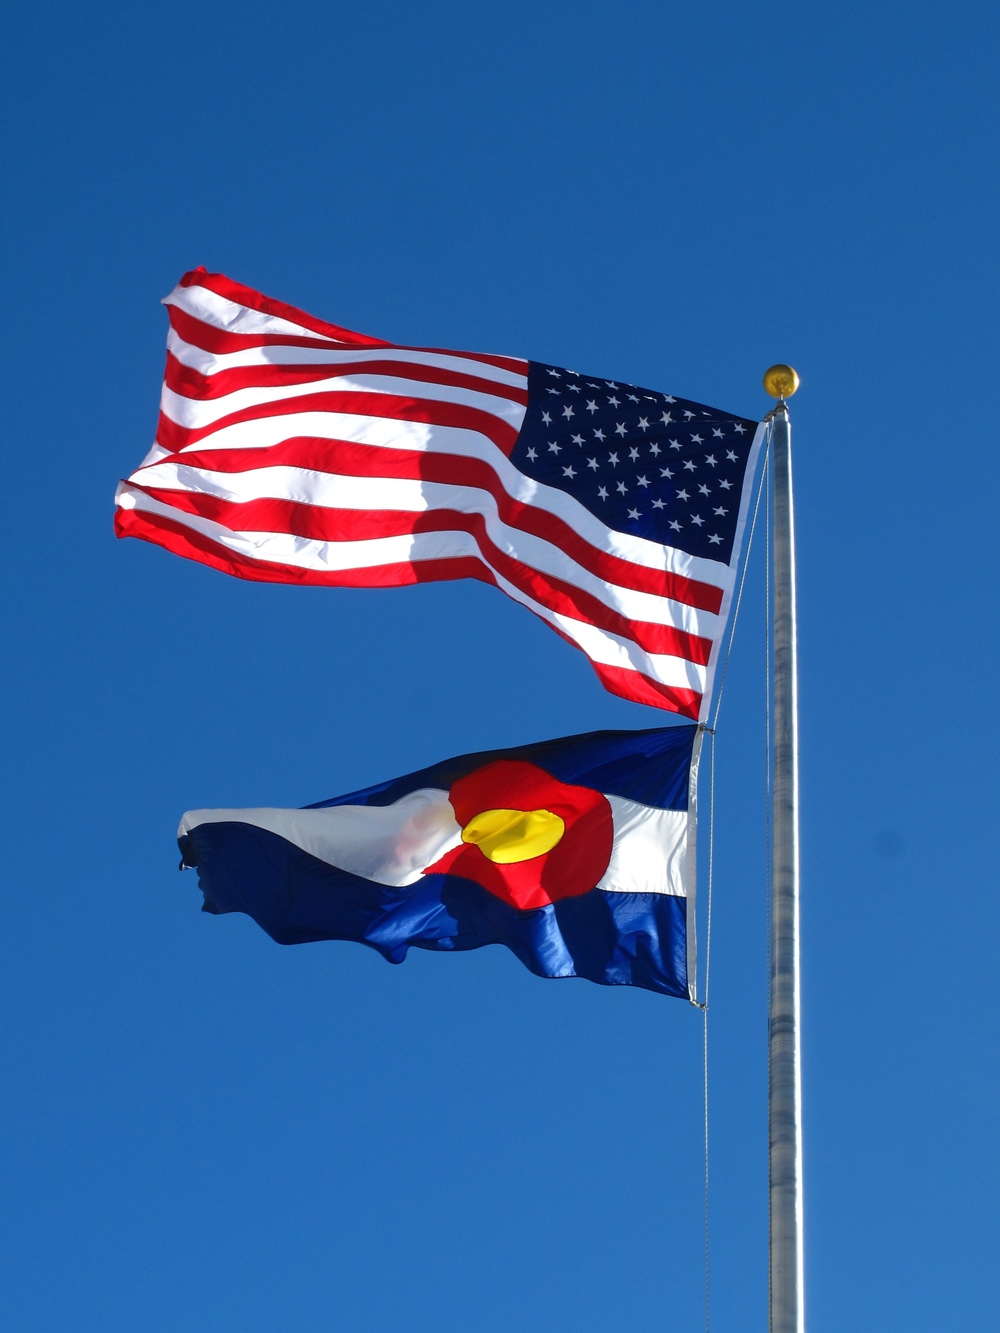 The American flag and the Colorado flag flying in the breeze.